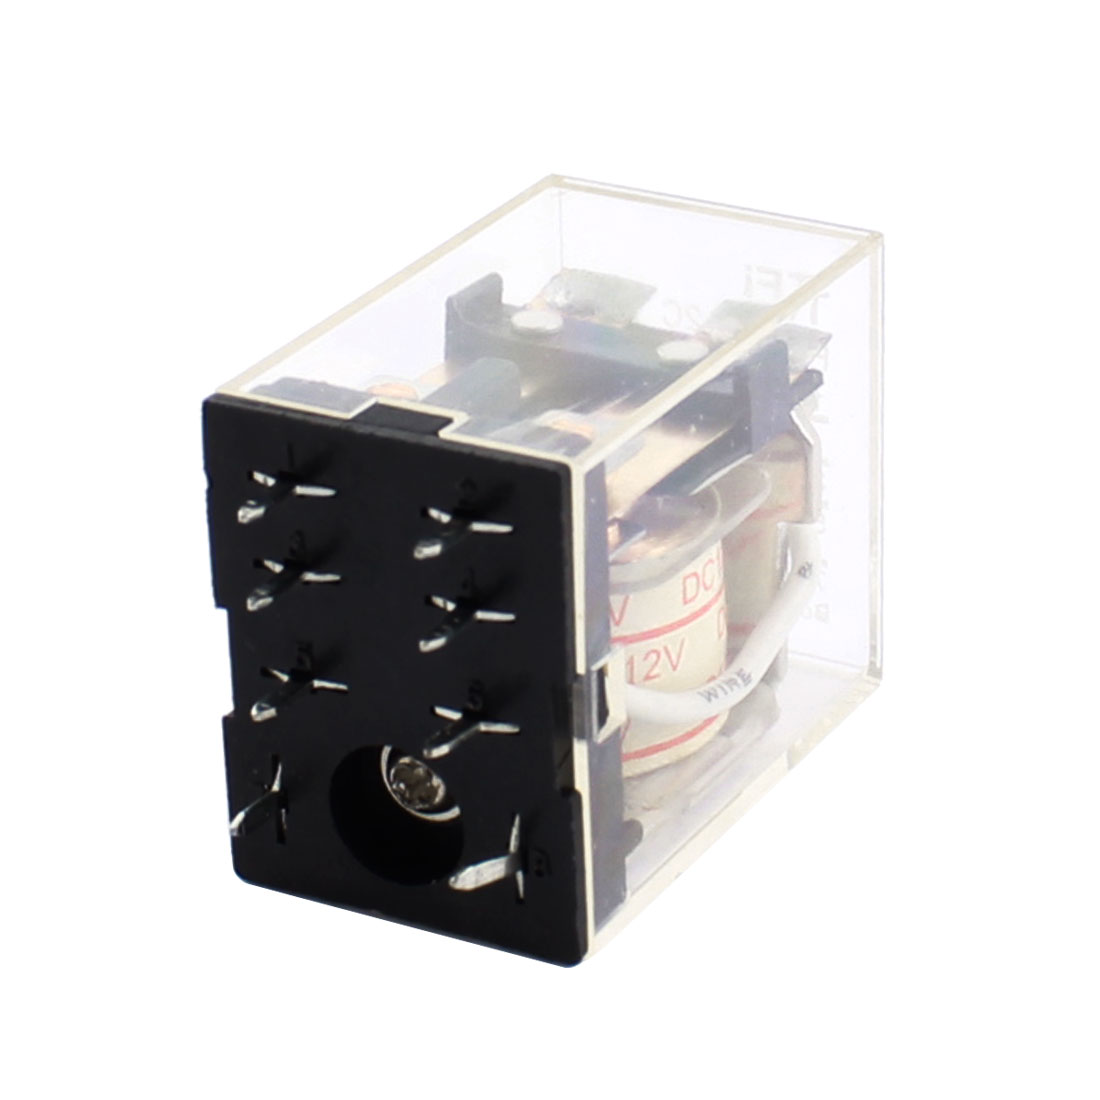 DC12V Coil Voltage 8Pin Double Pole Double Throw General Purpose Electromagnetic Power Relay